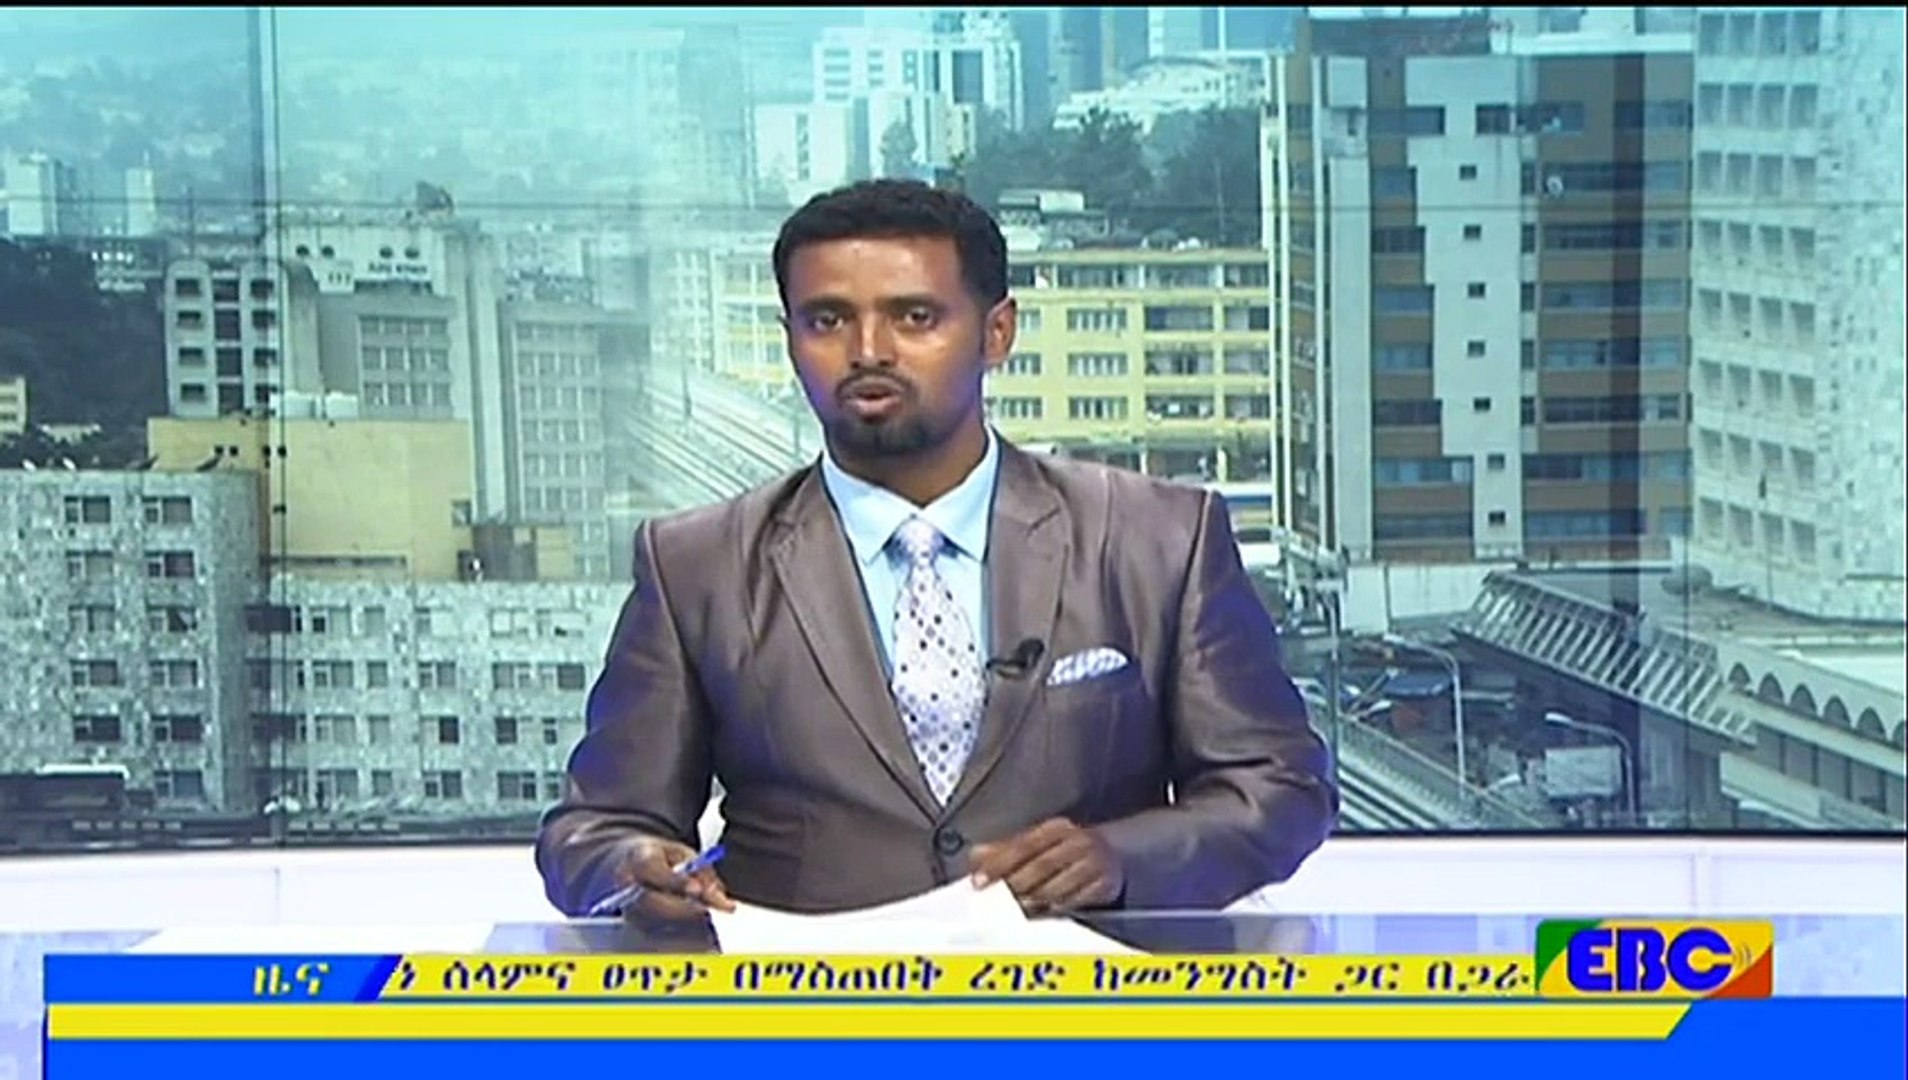 Addis Ababa Master Plan Office has been shut down